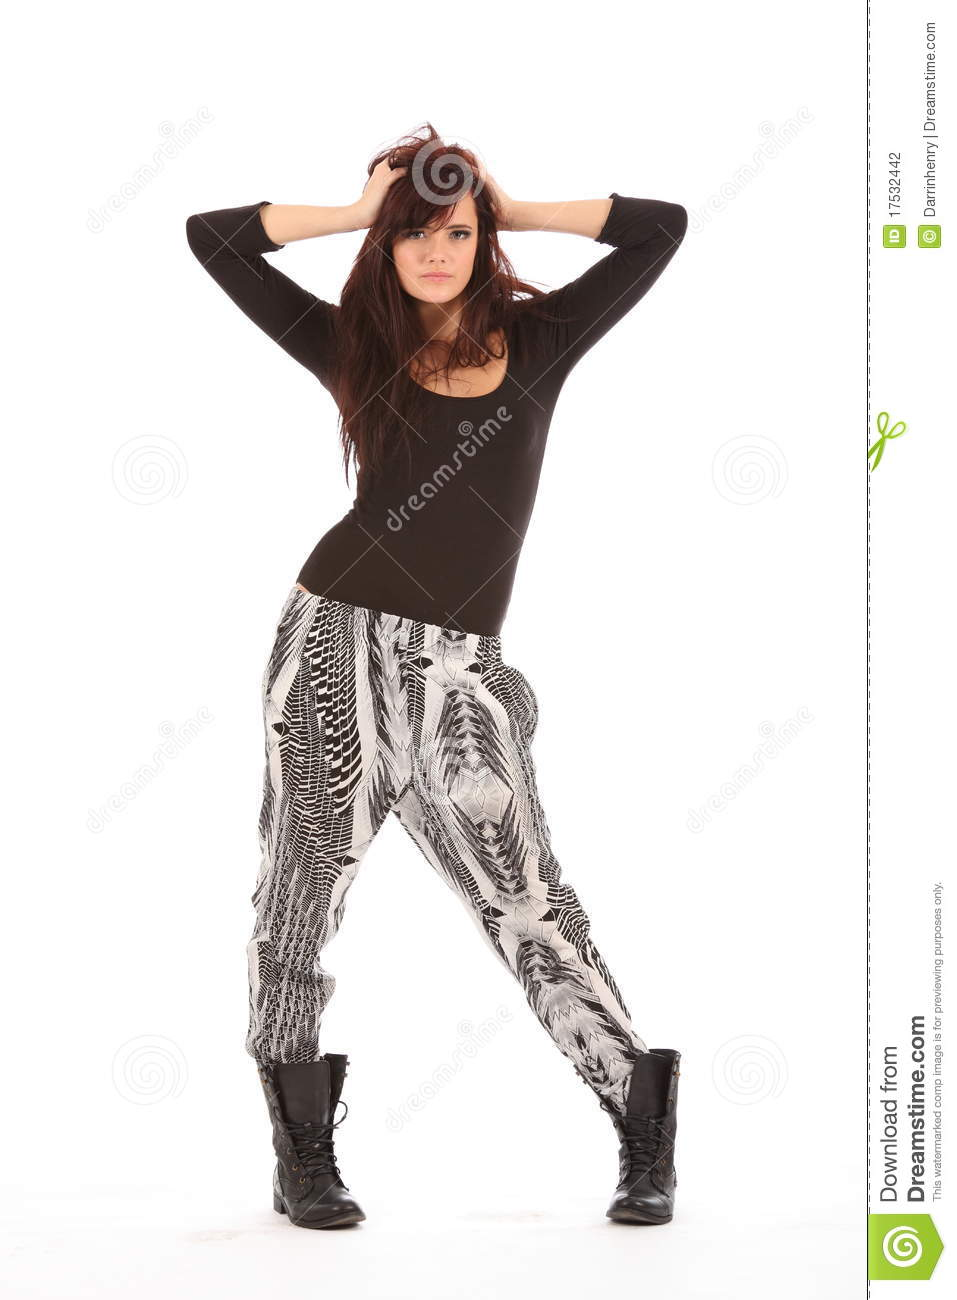 Urban Fashion Model In Black And White Outfit Stock Photo - Image 17532442